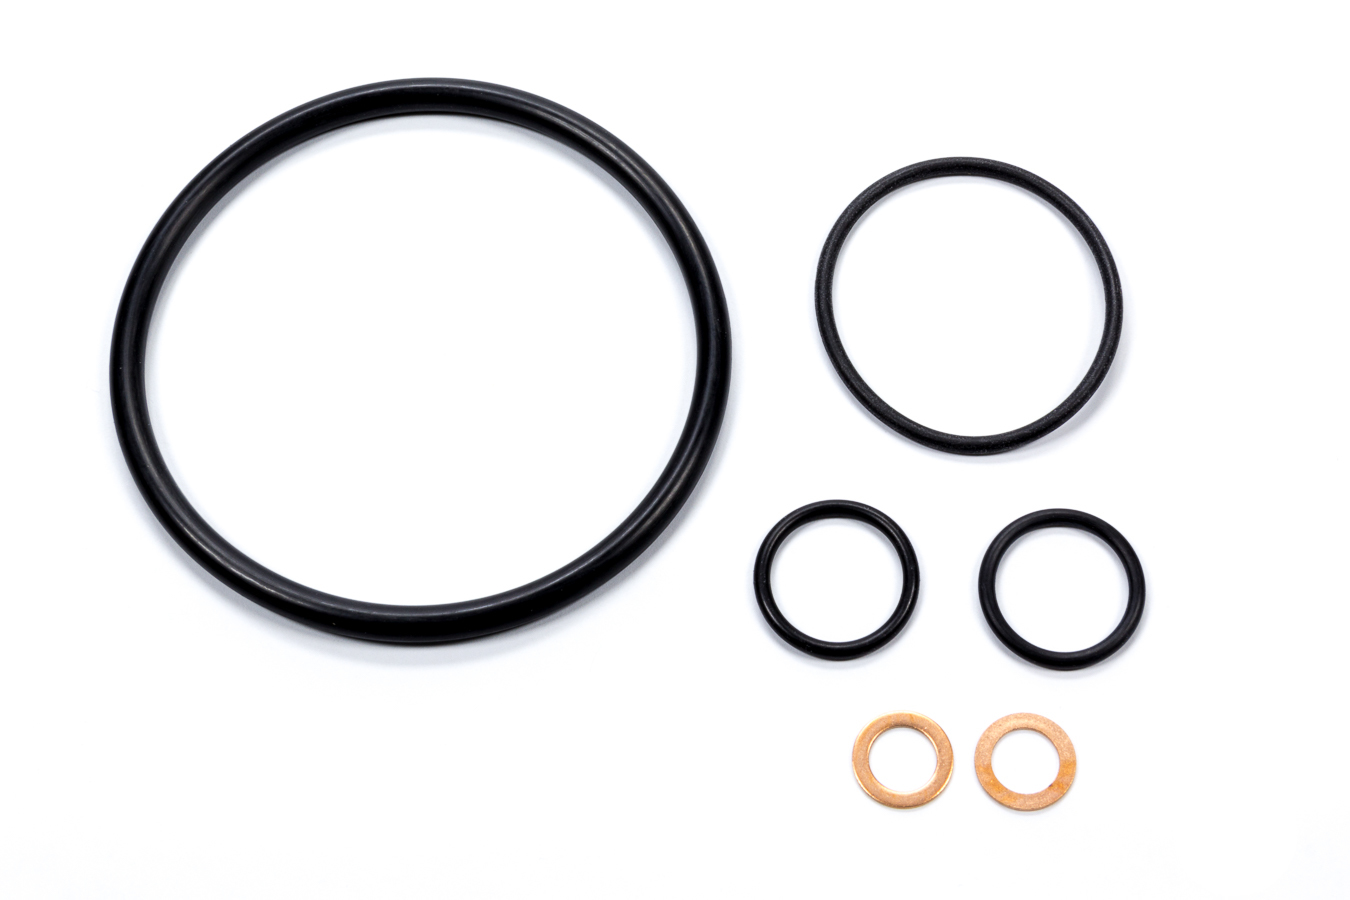 Barnes ORK-109 O-Ring, Copper Washers Included, Rubber, Barnes Oil Filter Adapters, Kit